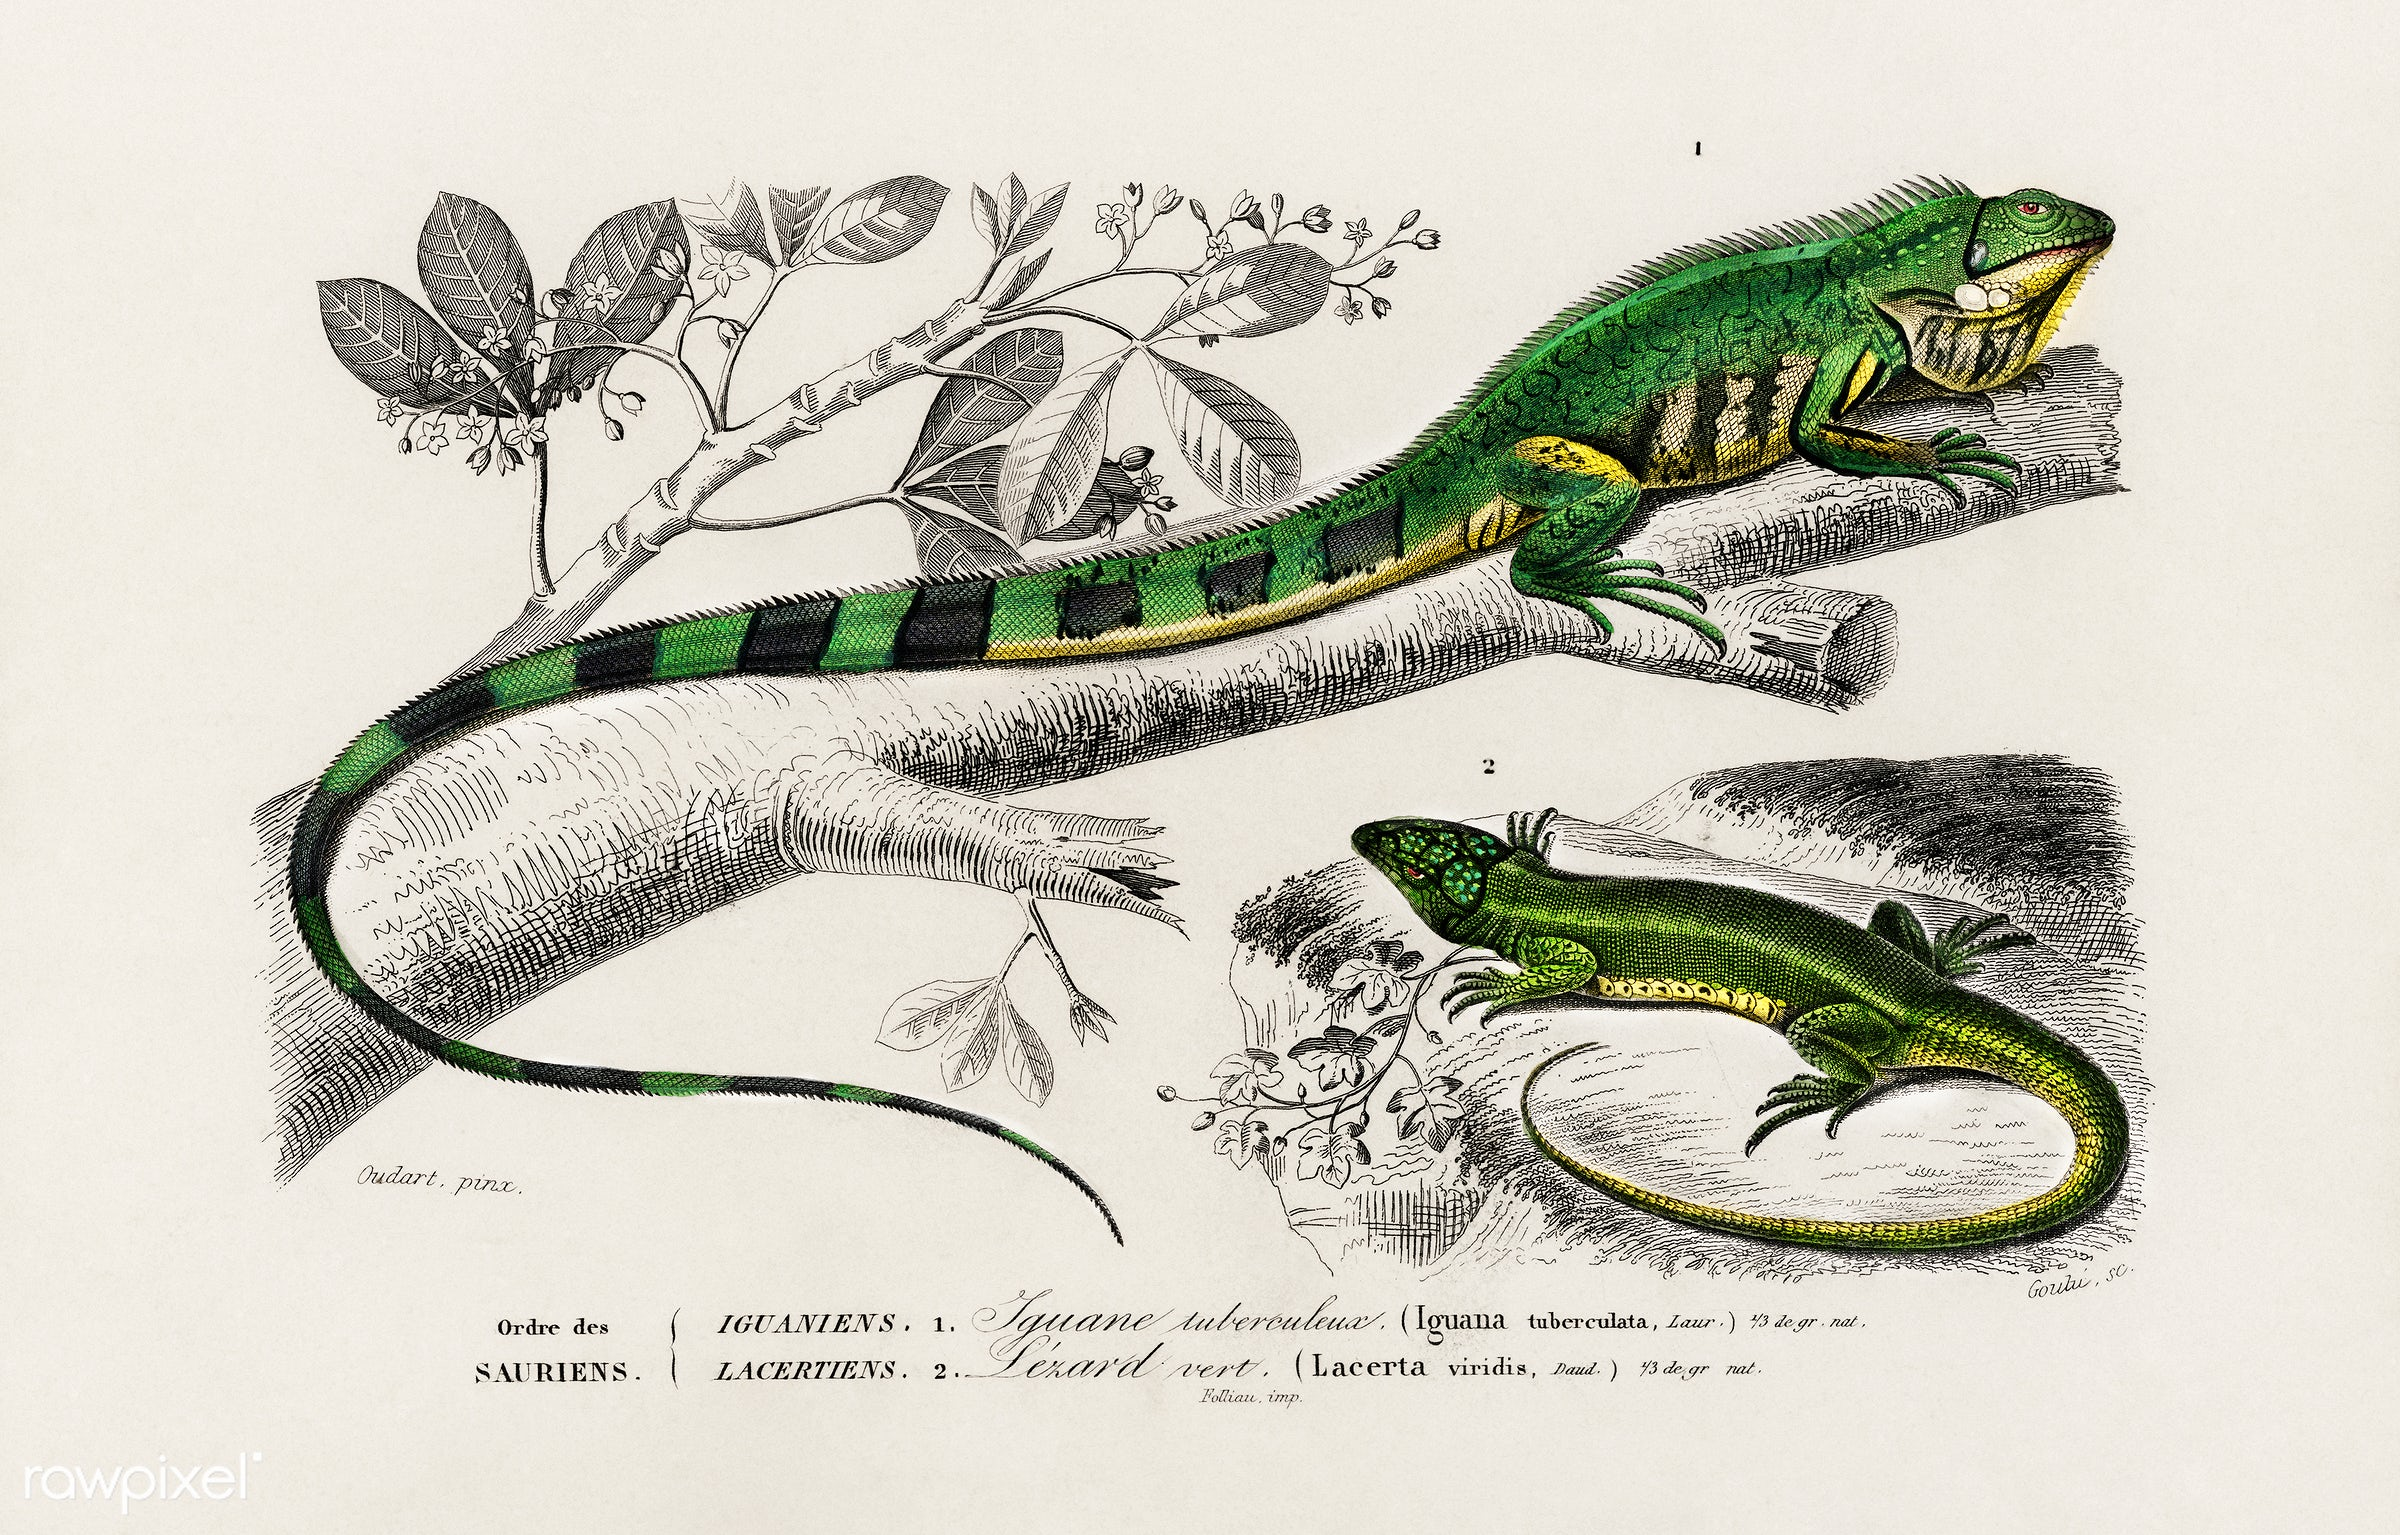 Green lizard (iguana) and Green lizard (Lacerta viridis) illustrated by Charles Dessalines D' Orbigny (1806-1876),...